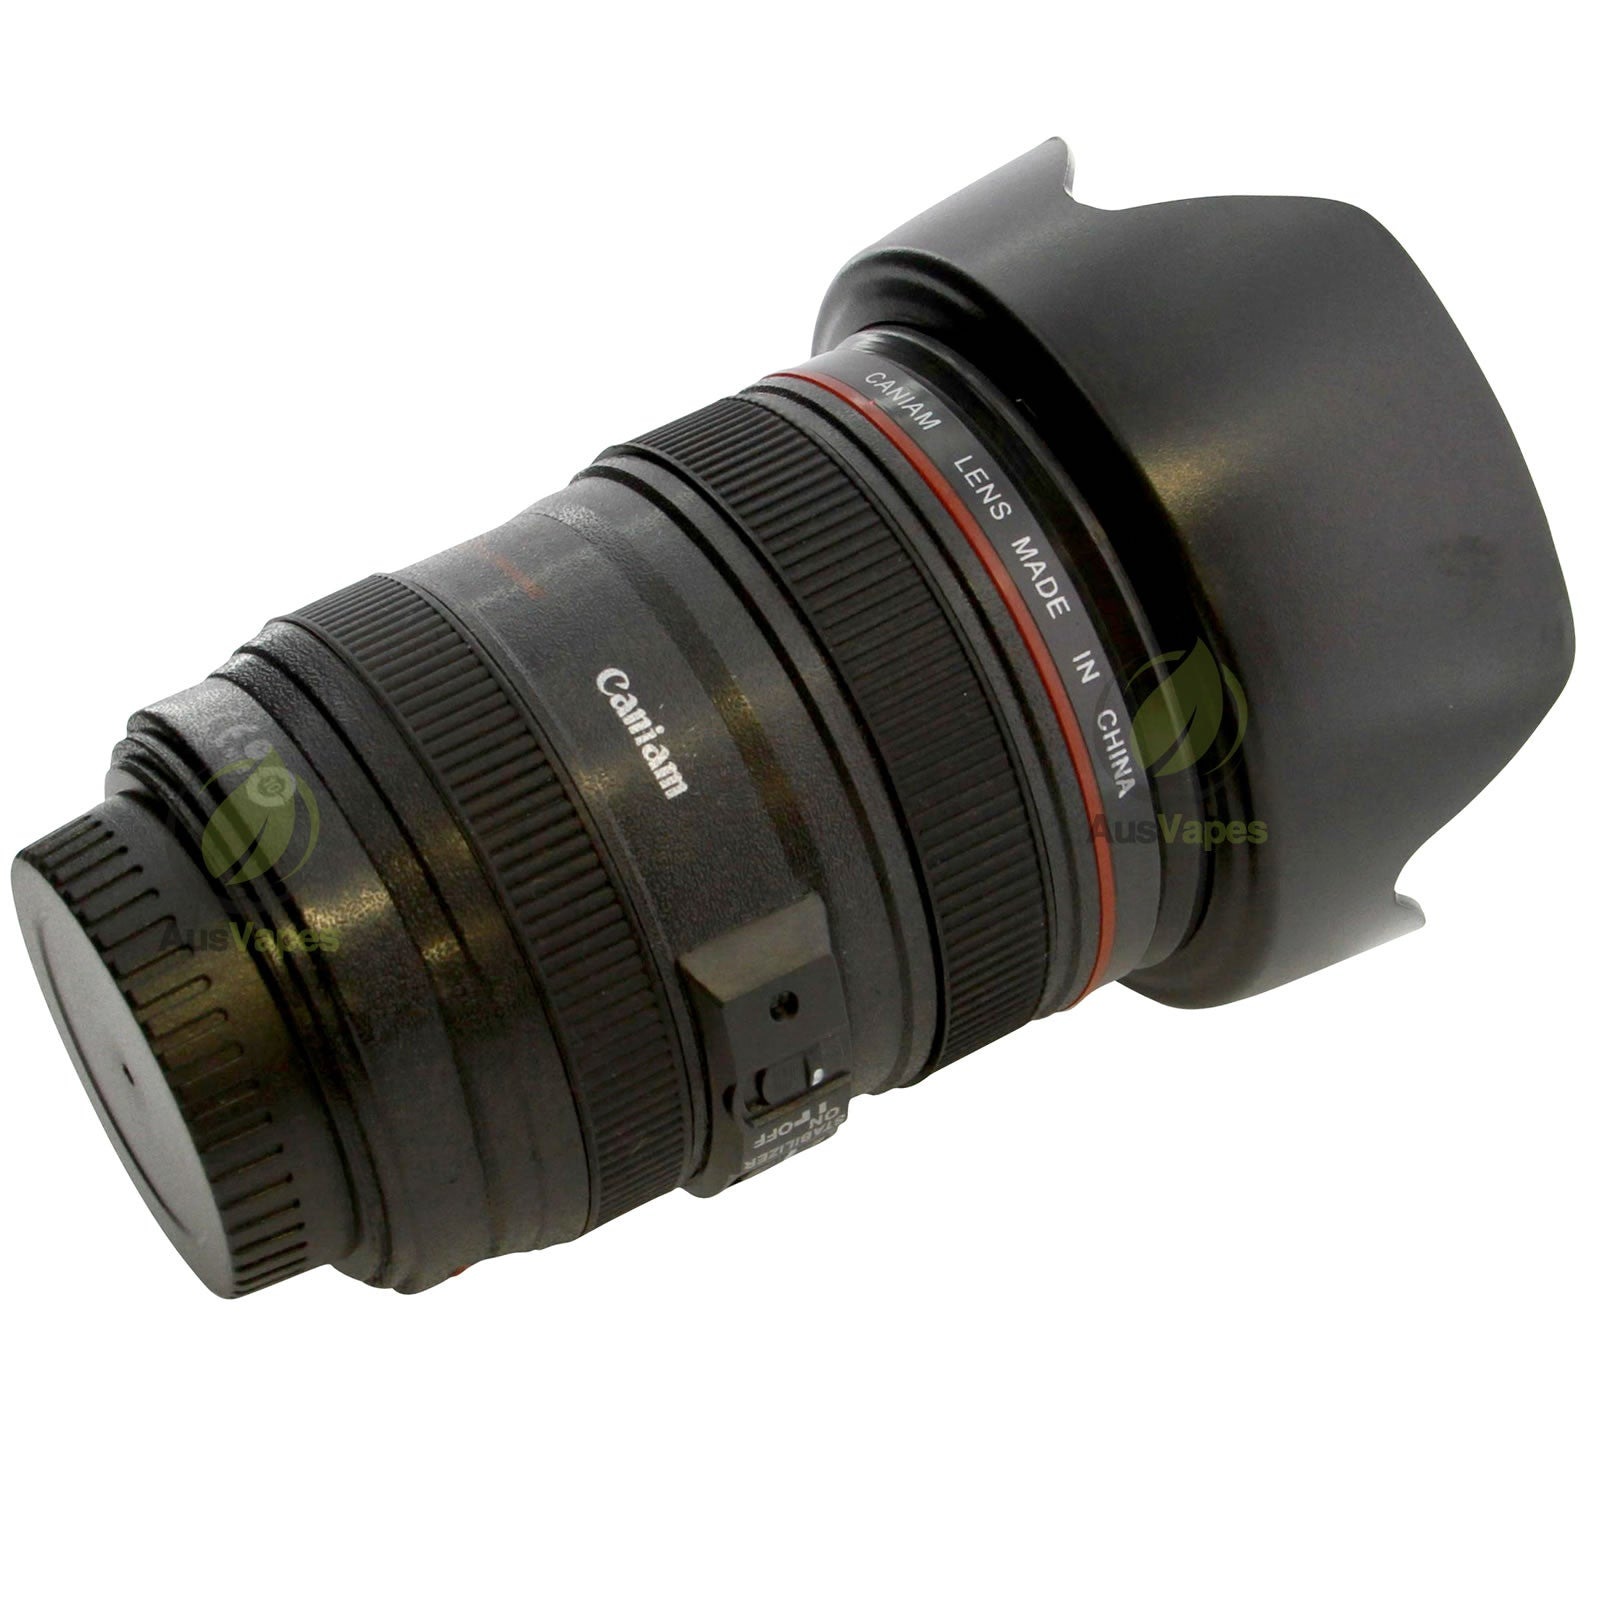 DISCONTINUED Cuplens Camera Lens Security Safe